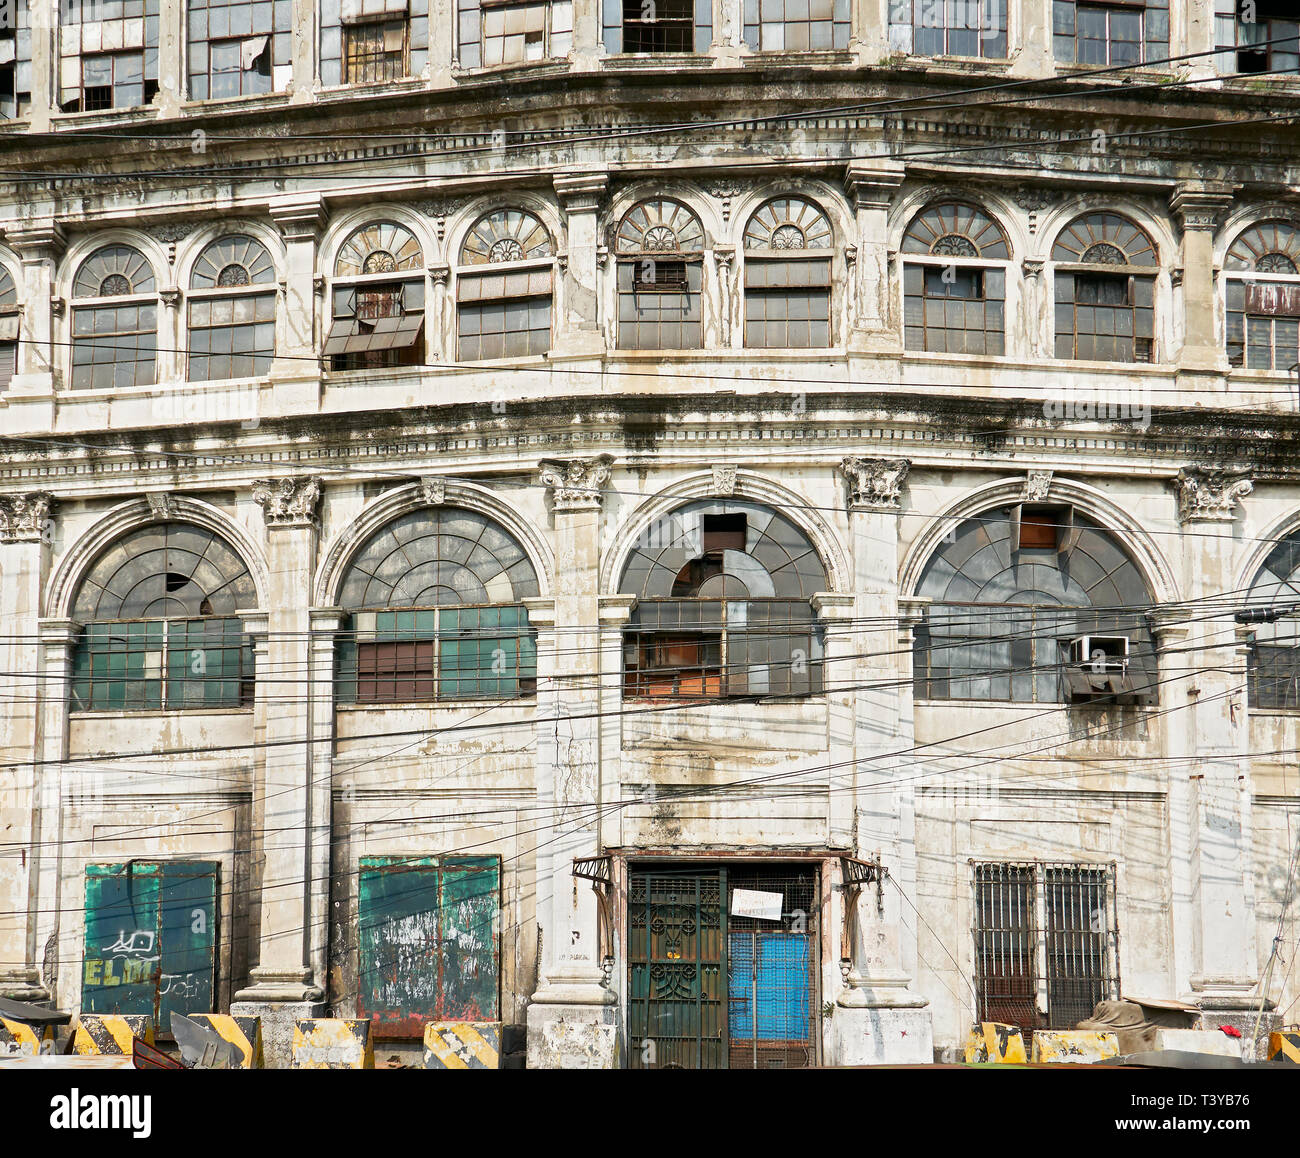 Facade of an old abandoned spanish trade building with power lines in front, in Escolta, Binondo, near the Pasig River, Manila, Philippines Stock Photo